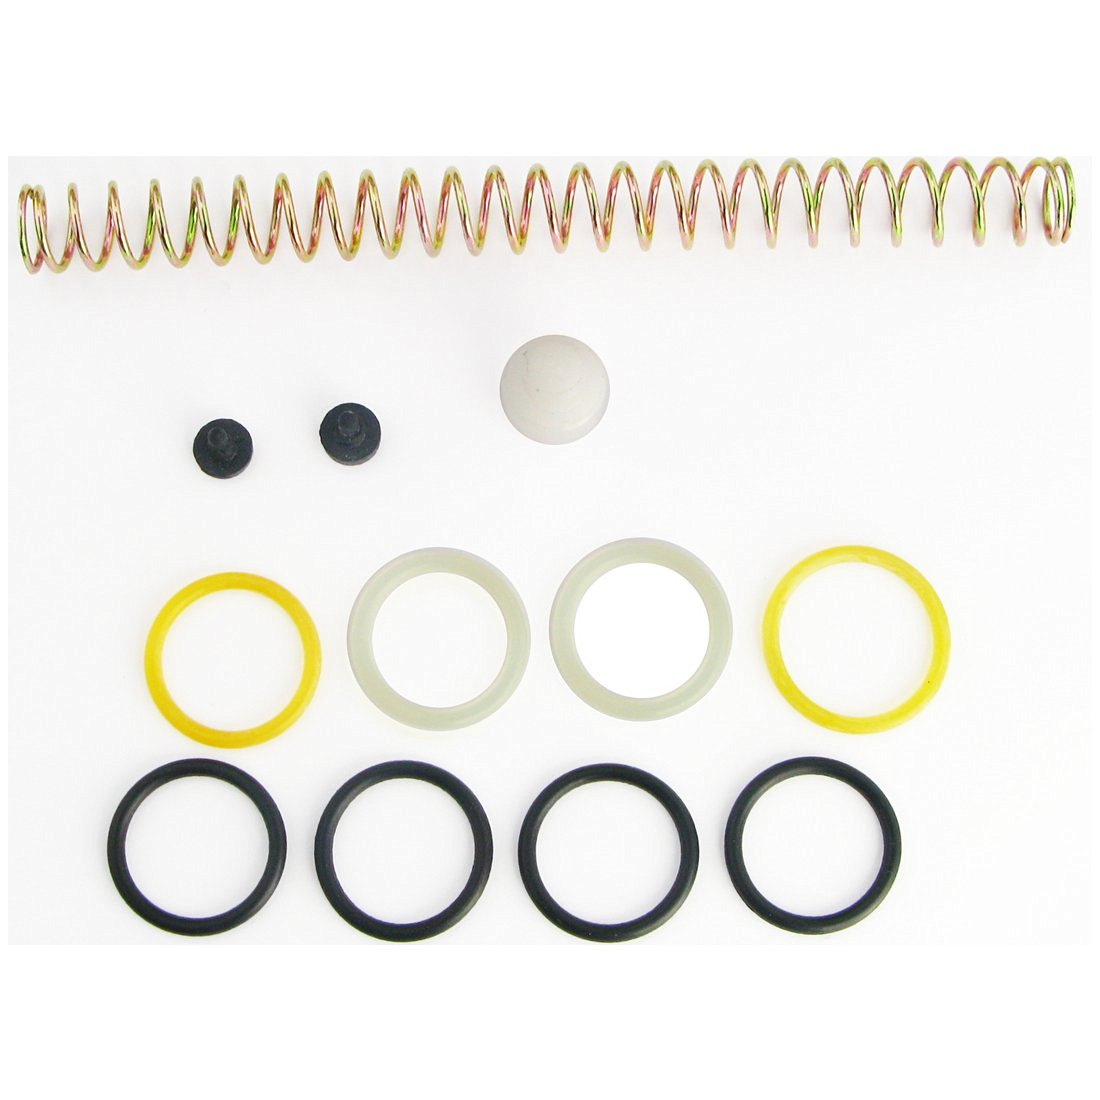 RPM Service and Spares Spyder Kit for Pre 2012 Spyders - Most Commonly Needed OEM Orings and Other Pieces